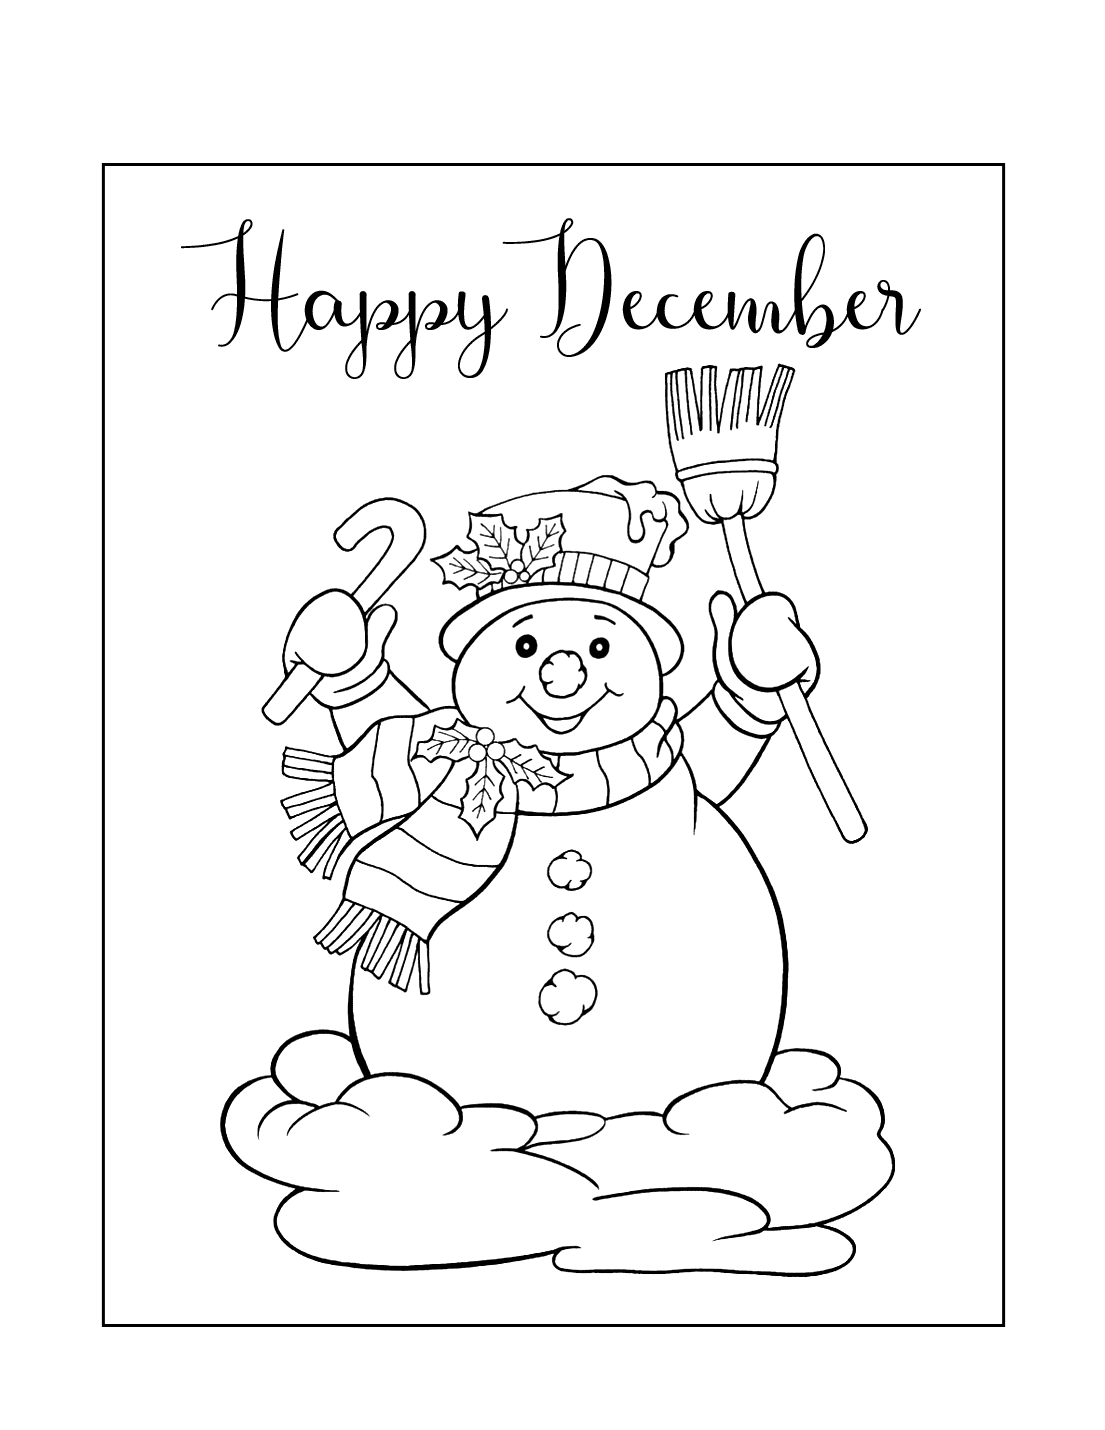 Happy December Snowman Coloring Page